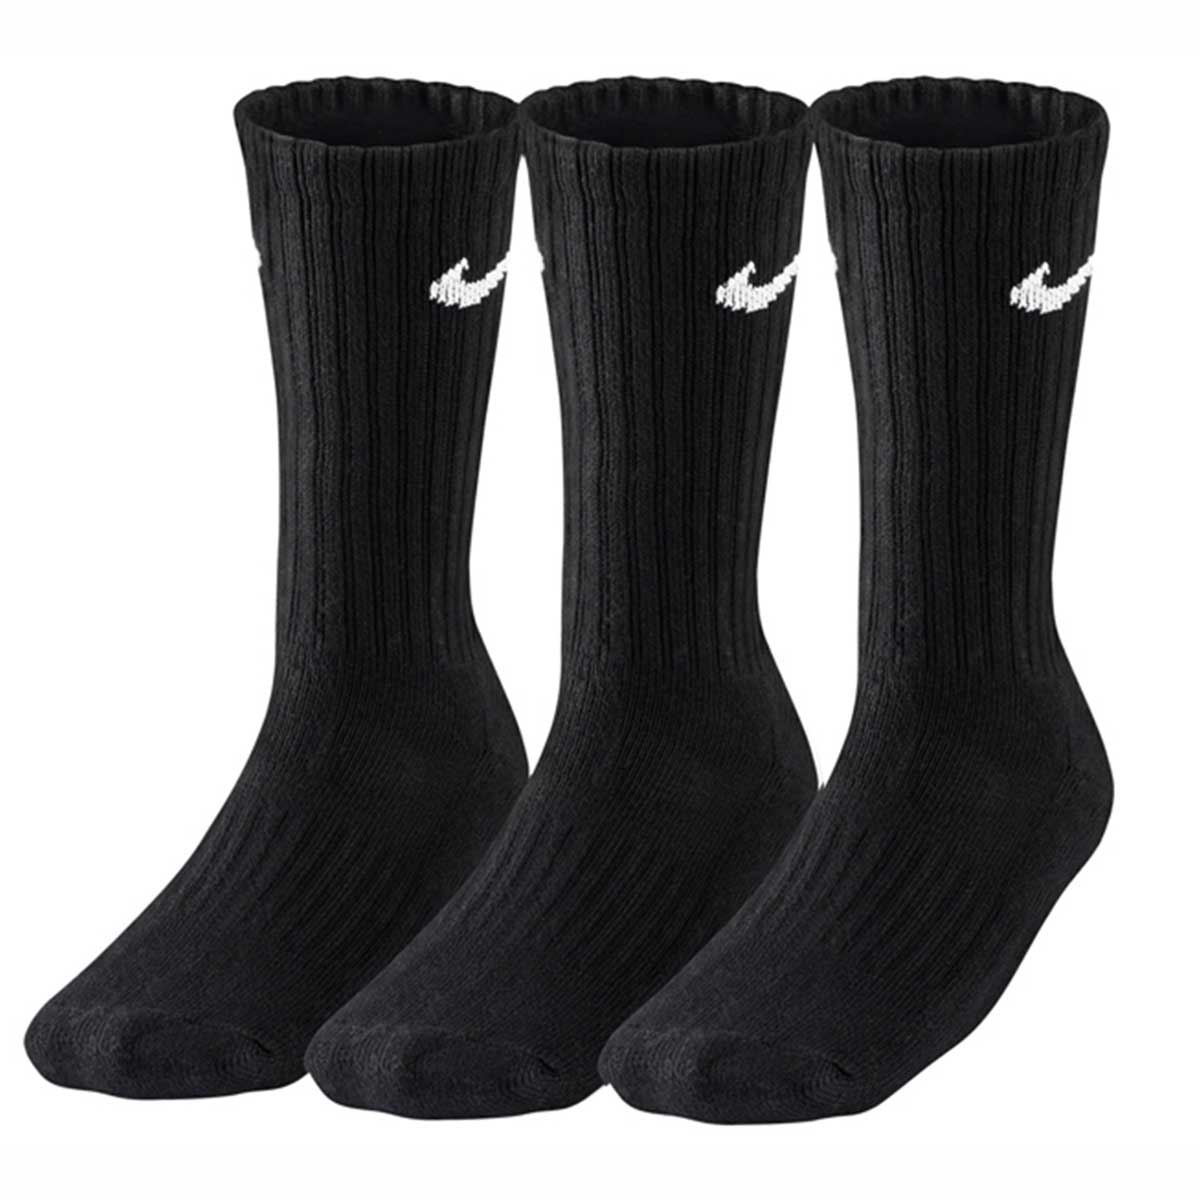 Buy Nike Performance Cotton Socks (Black - Pack of 3) Online at Lowest  Price in India 17b04bb69d